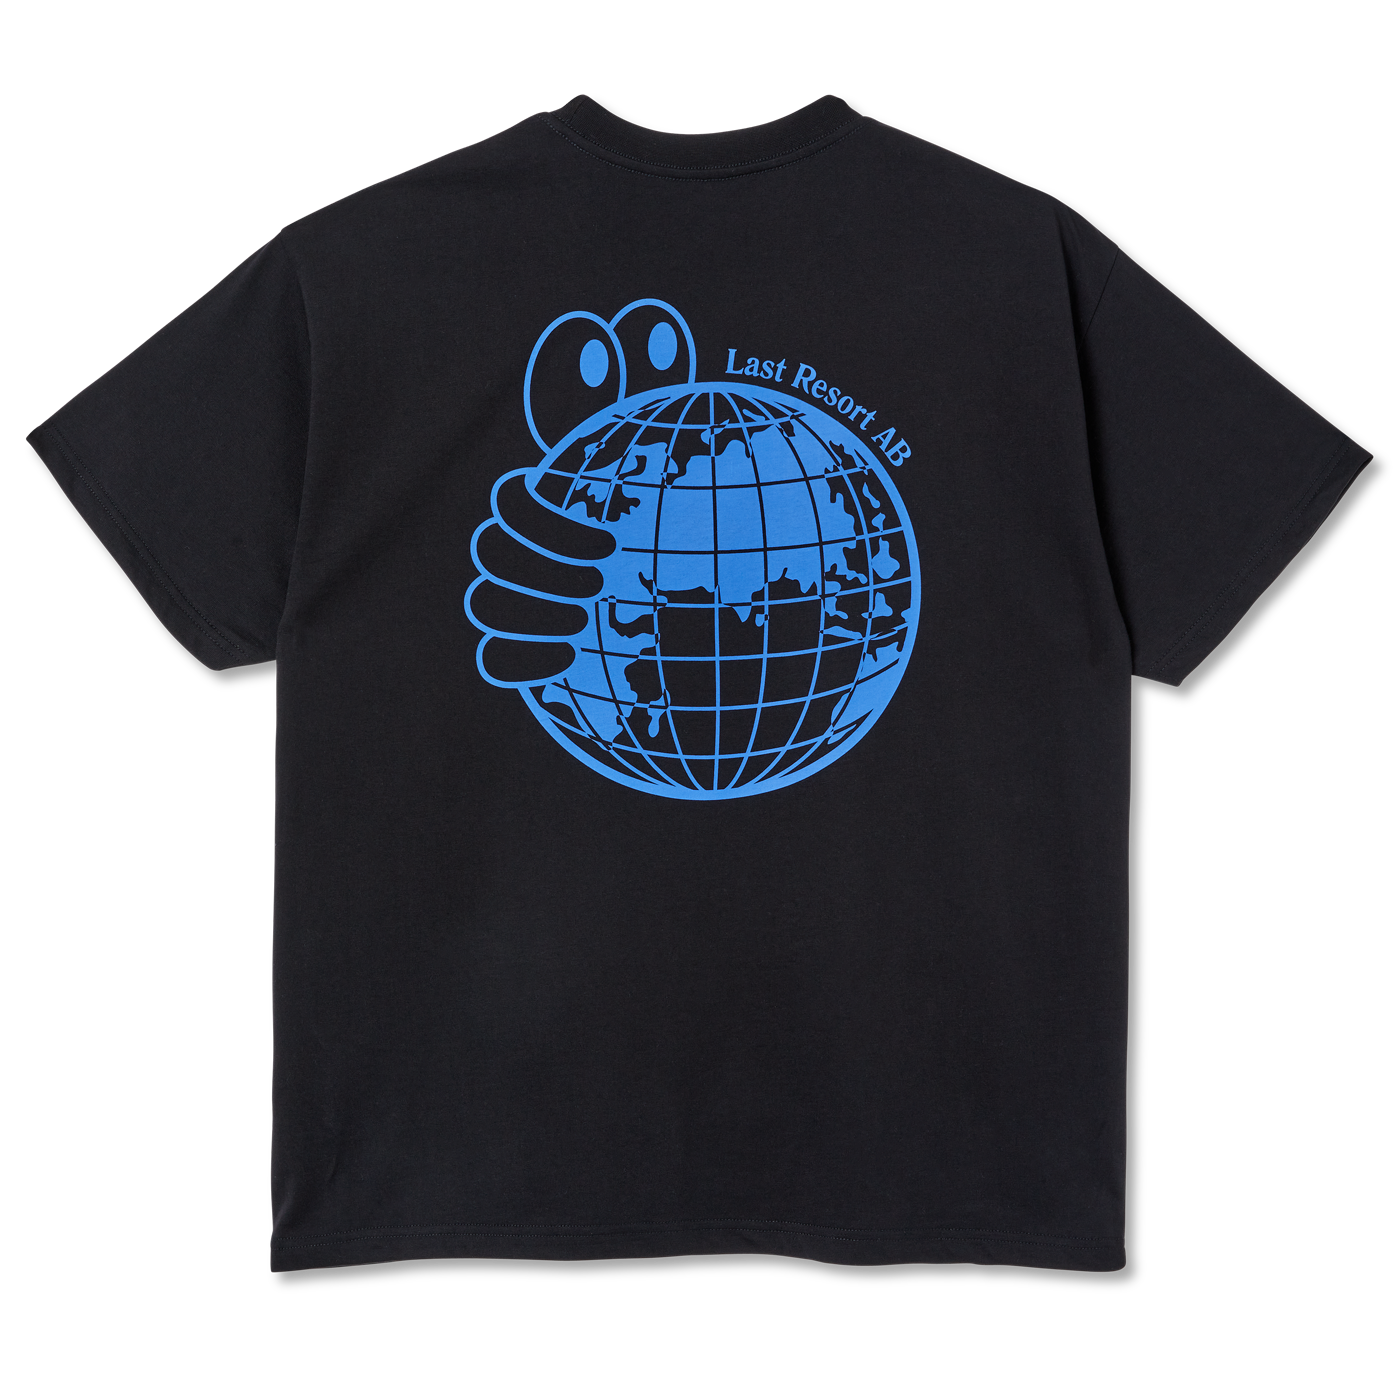 Last Resort AB World Tee Black